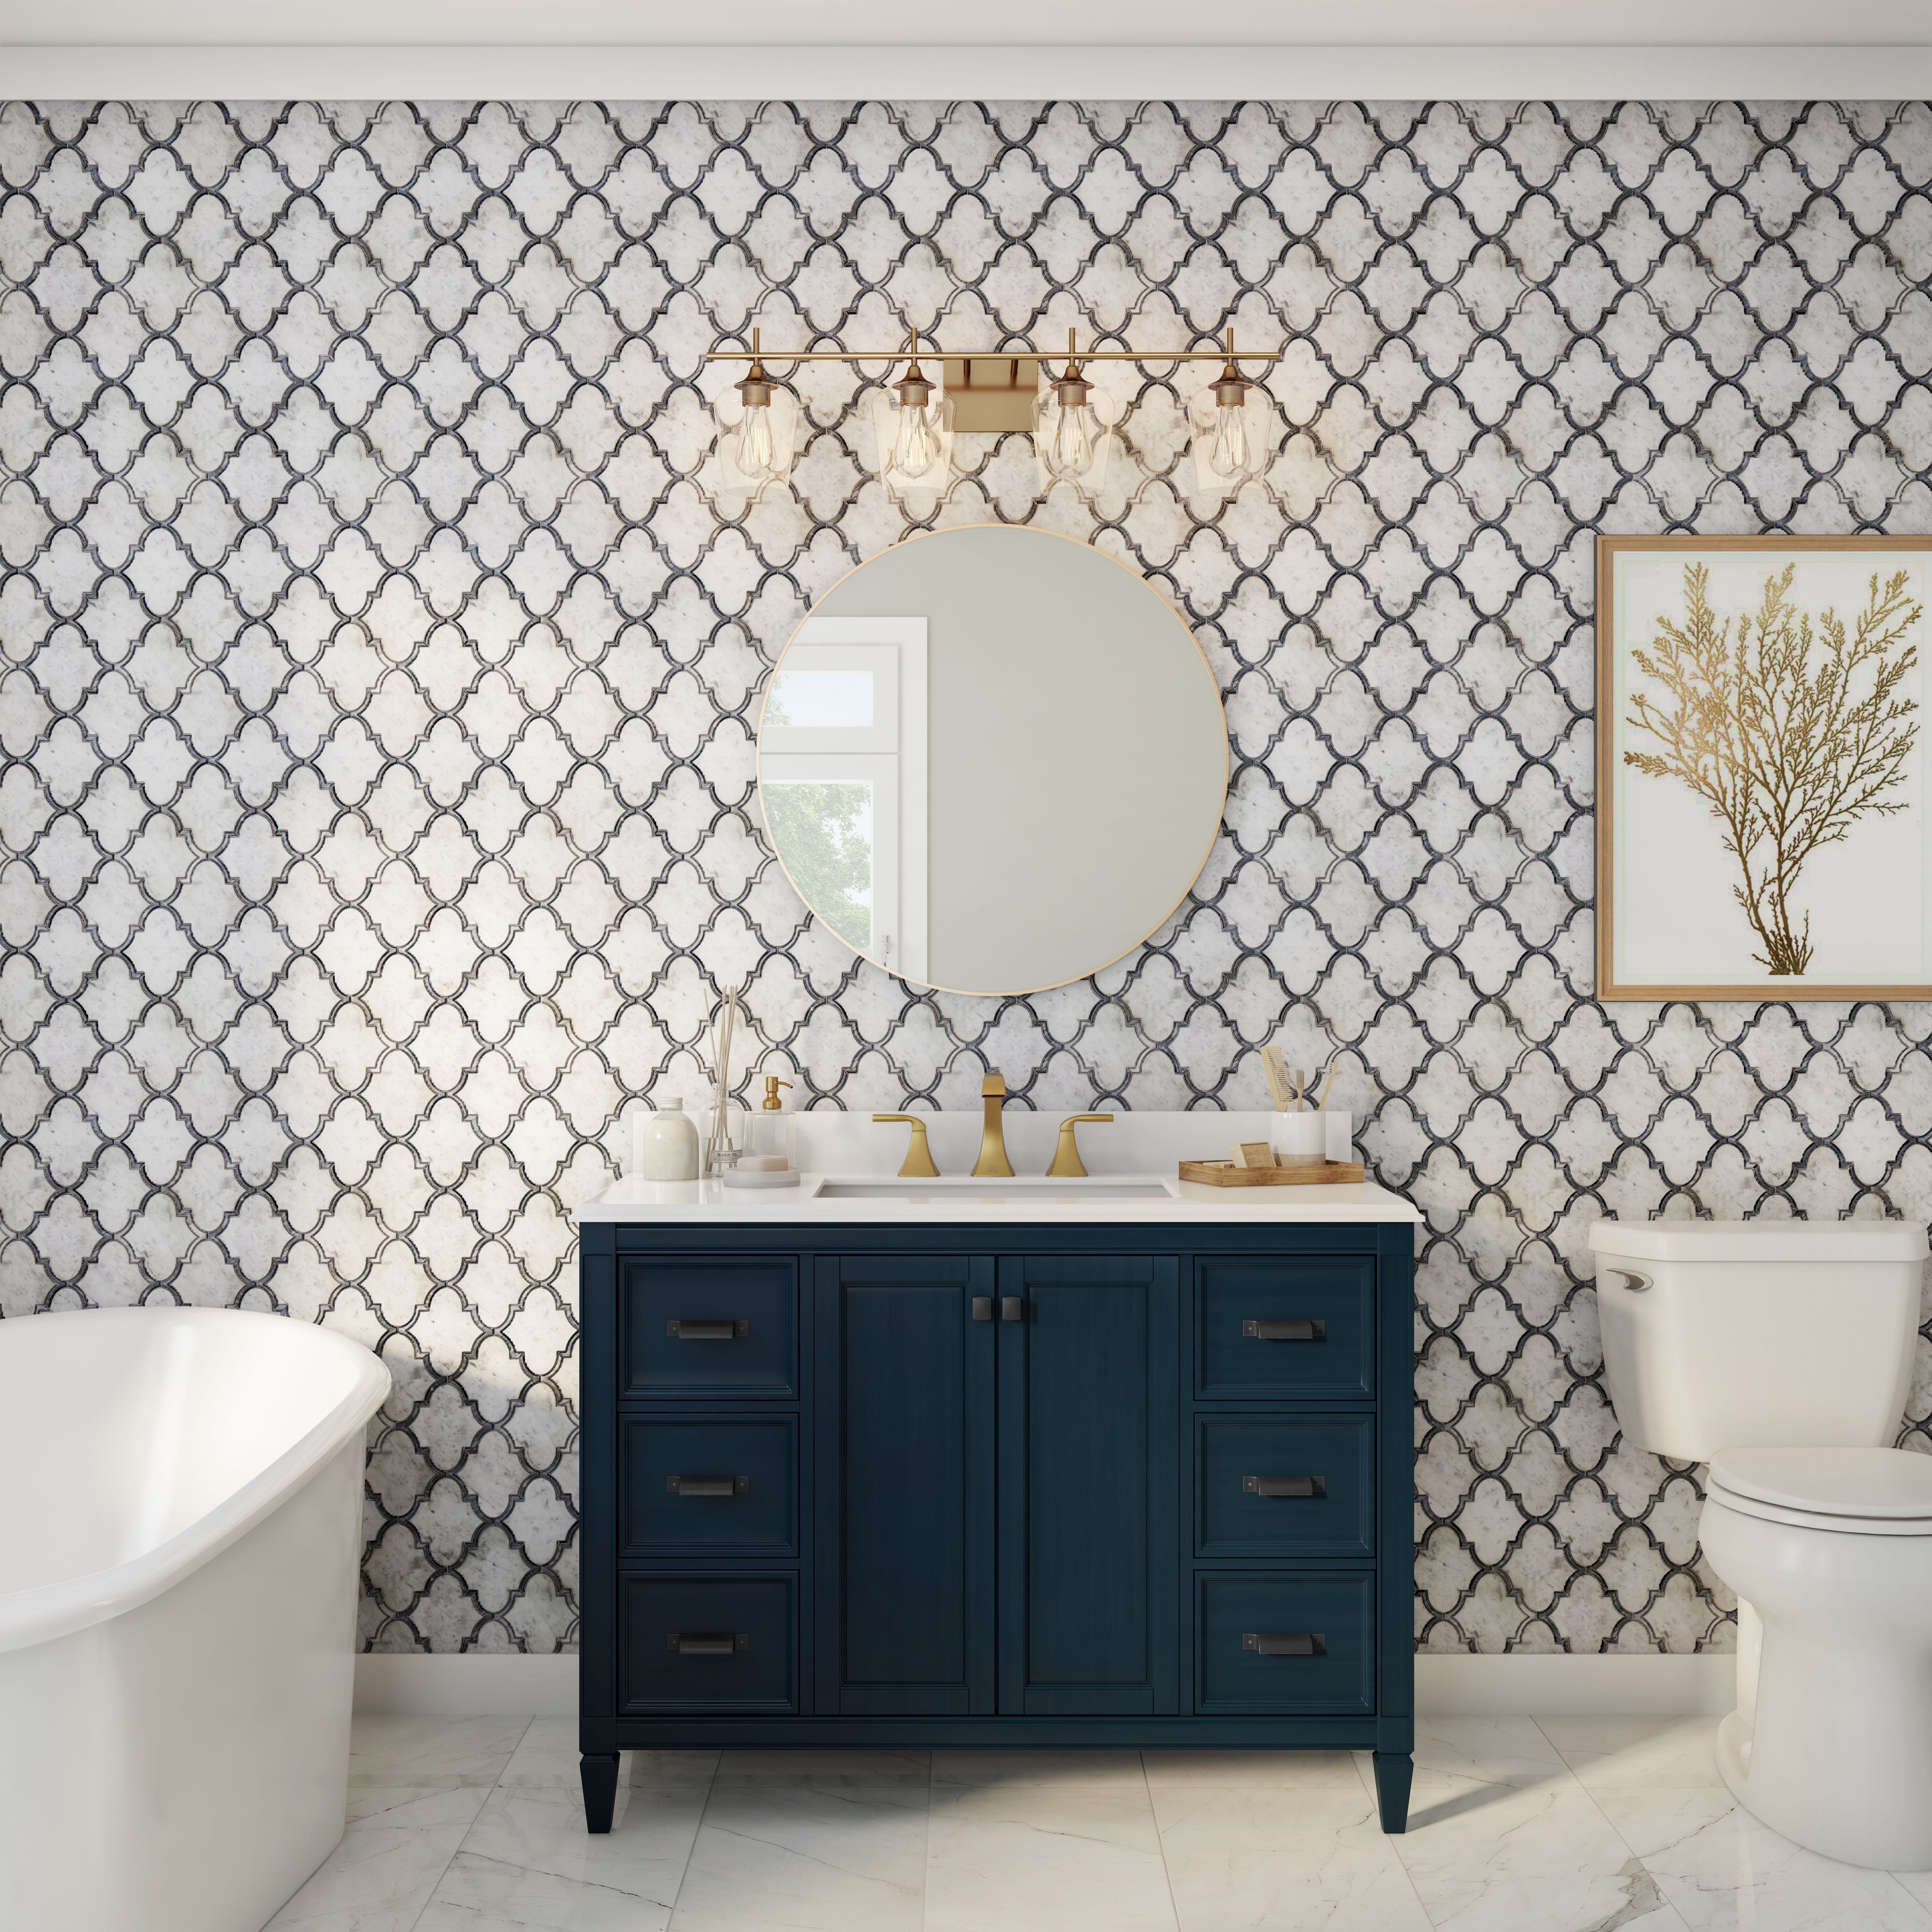 Whether You Re Looking For A Modern Bathroom Vanity Or Modern Bathroom Mirrors The Home Depot C Modern Bathroom Mirrors Latest Bathroom Trends Bathroom Trends